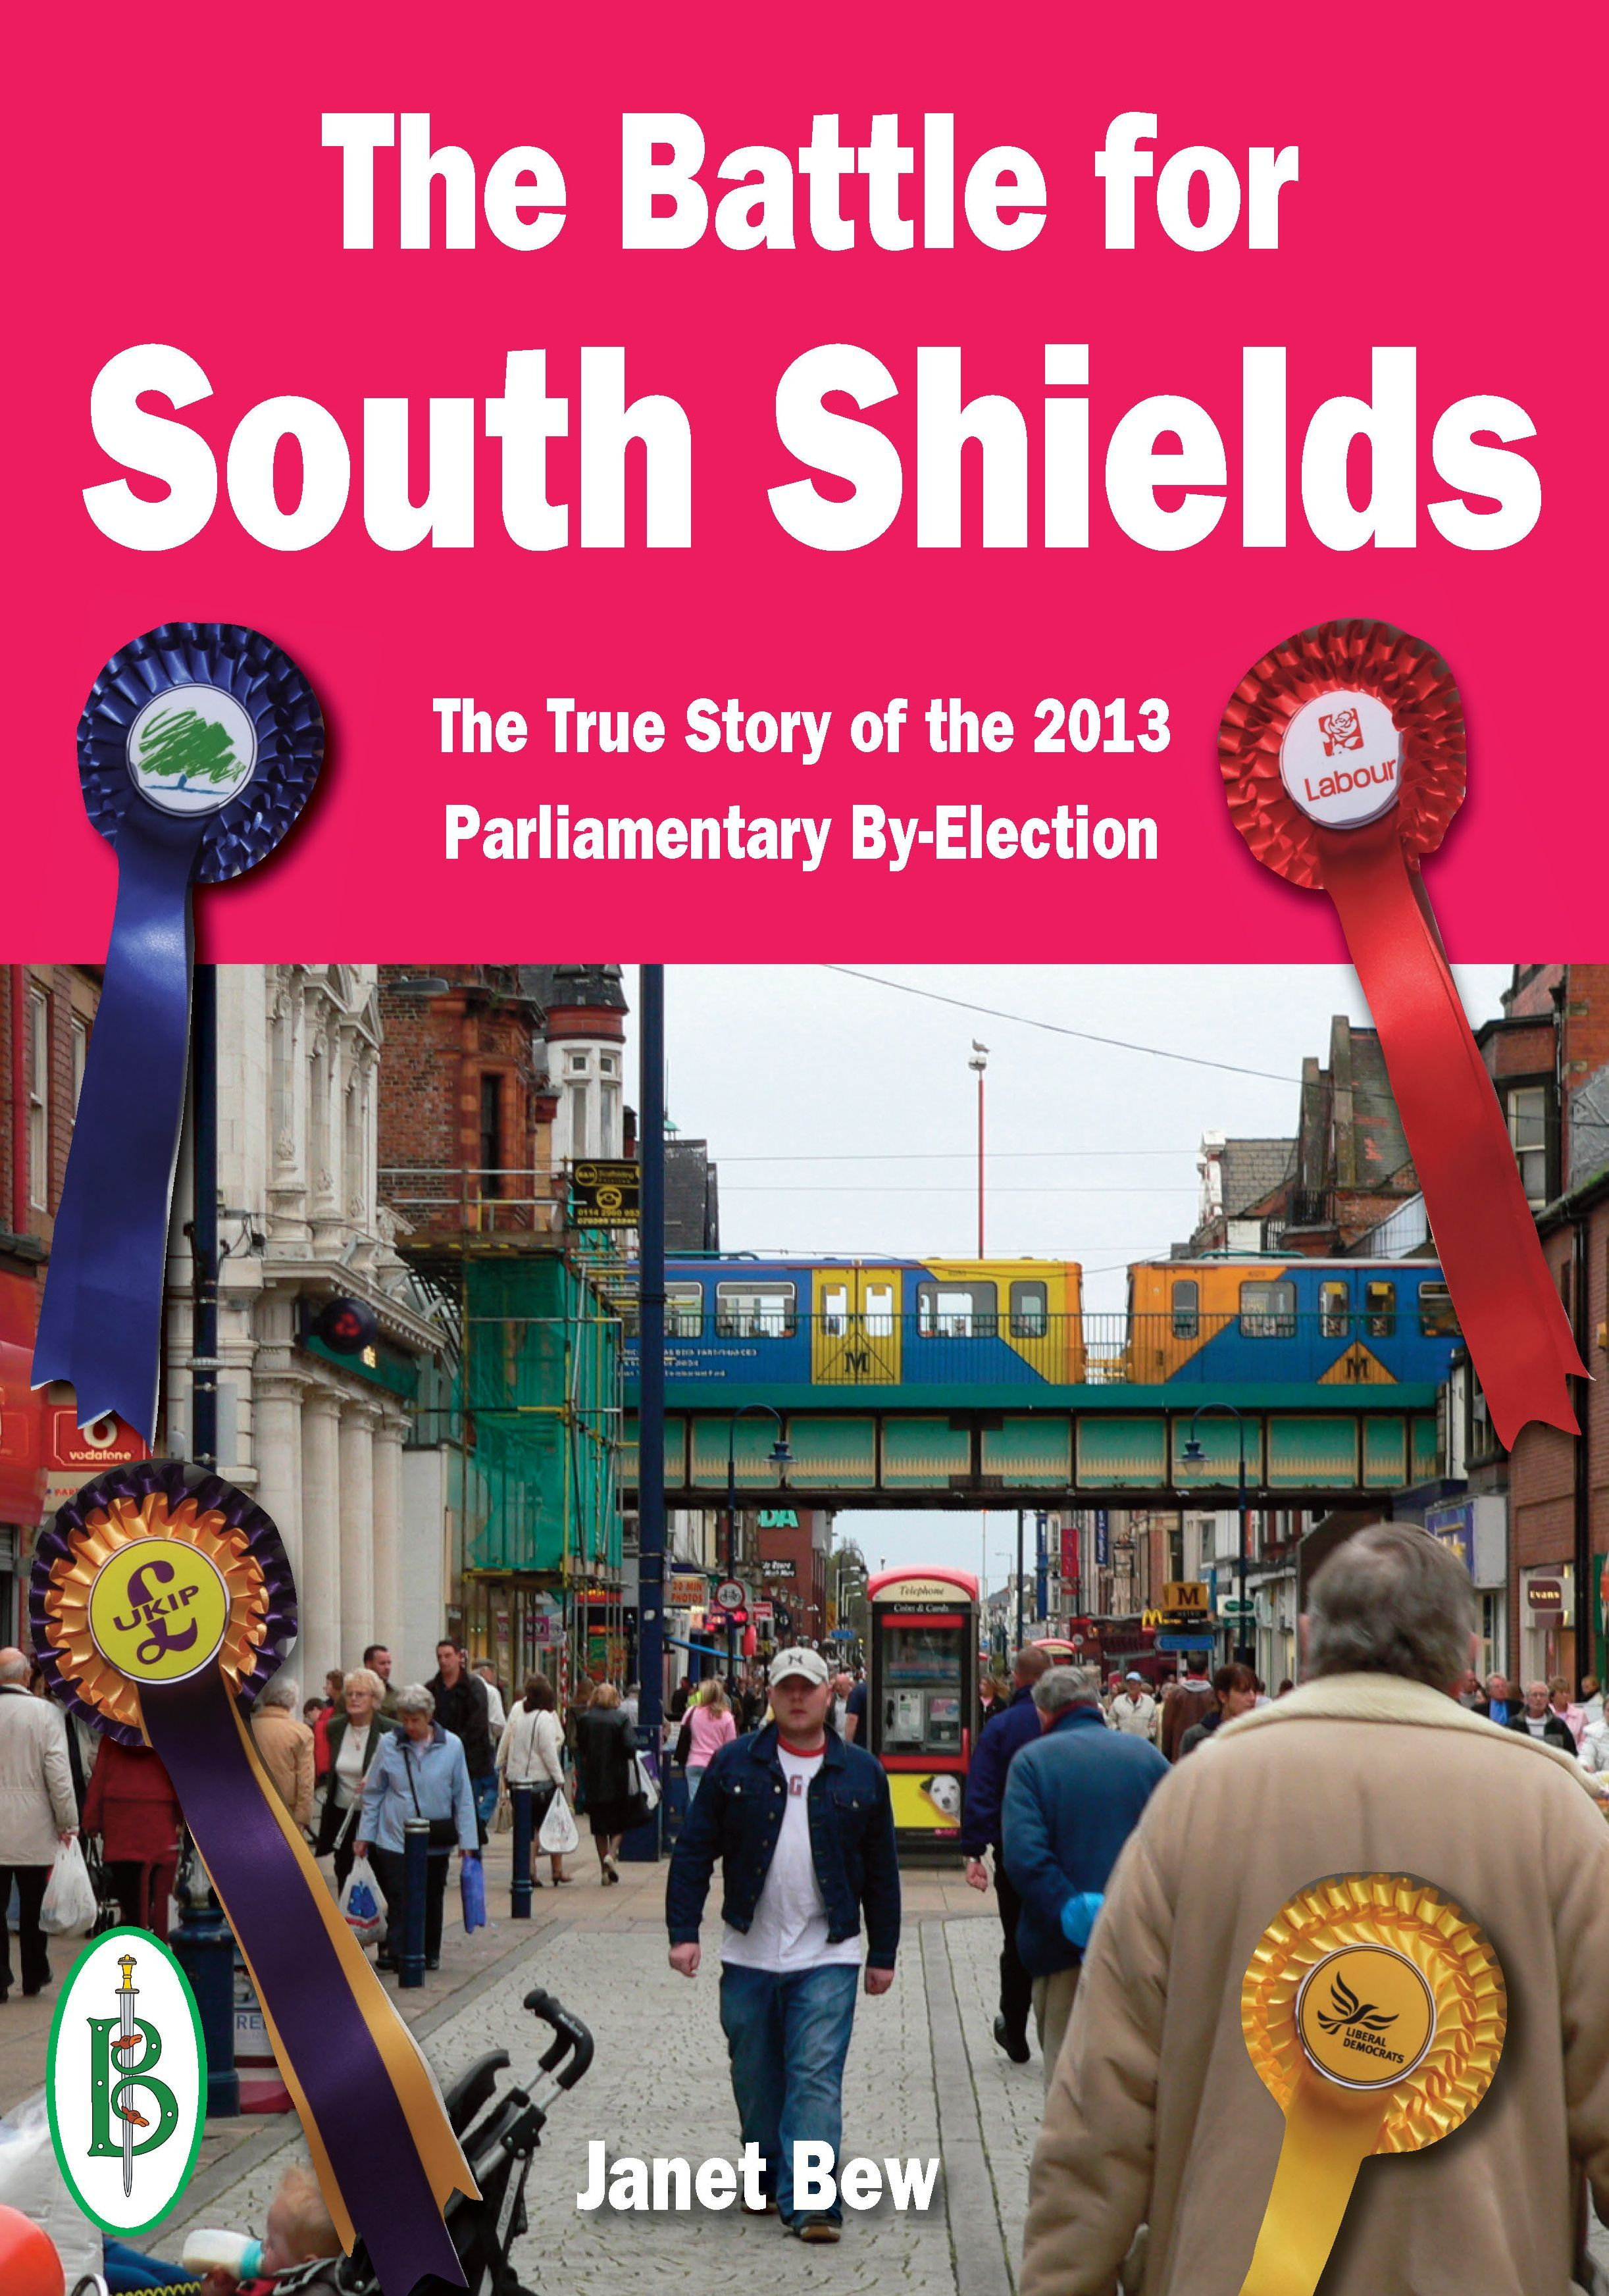 The Battle for South Shields: The True Story of the 2013 Parliamentary By-Election